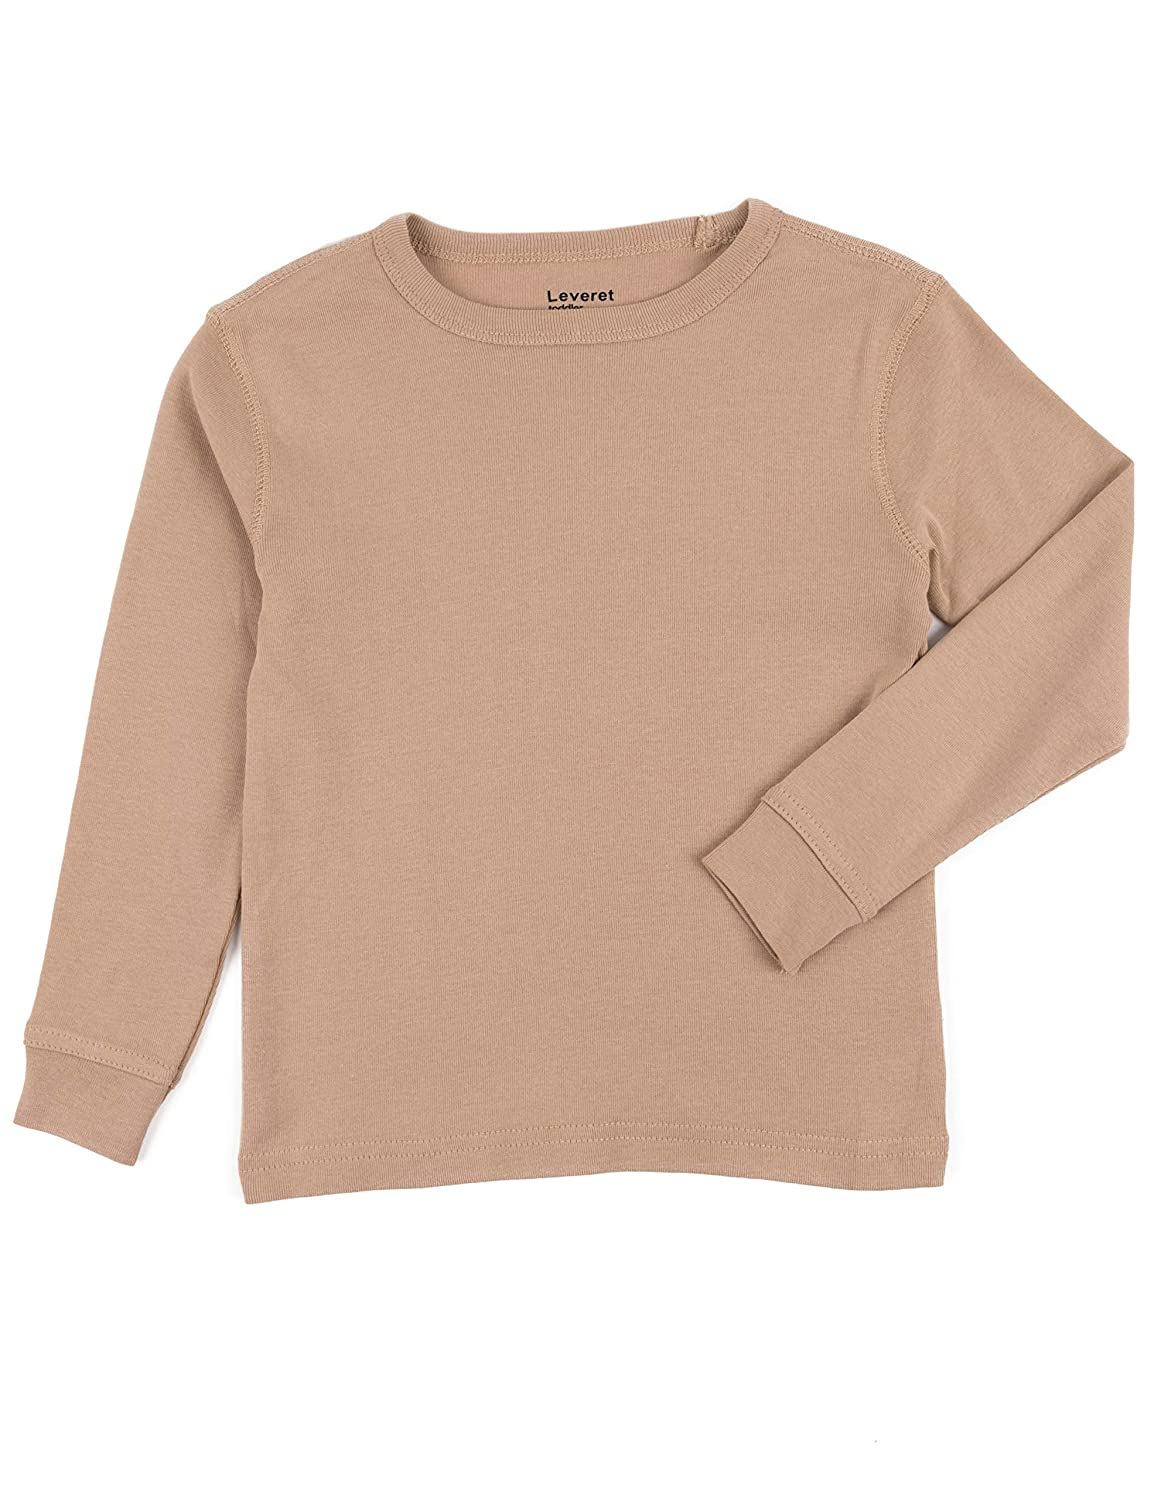 f351000c1 Amazon.com: Leveret Long Sleeve Boys Girls Kids & Toddler T-Shirt 100%  Cotton (2-14 Years) Variety of Colors: Clothing